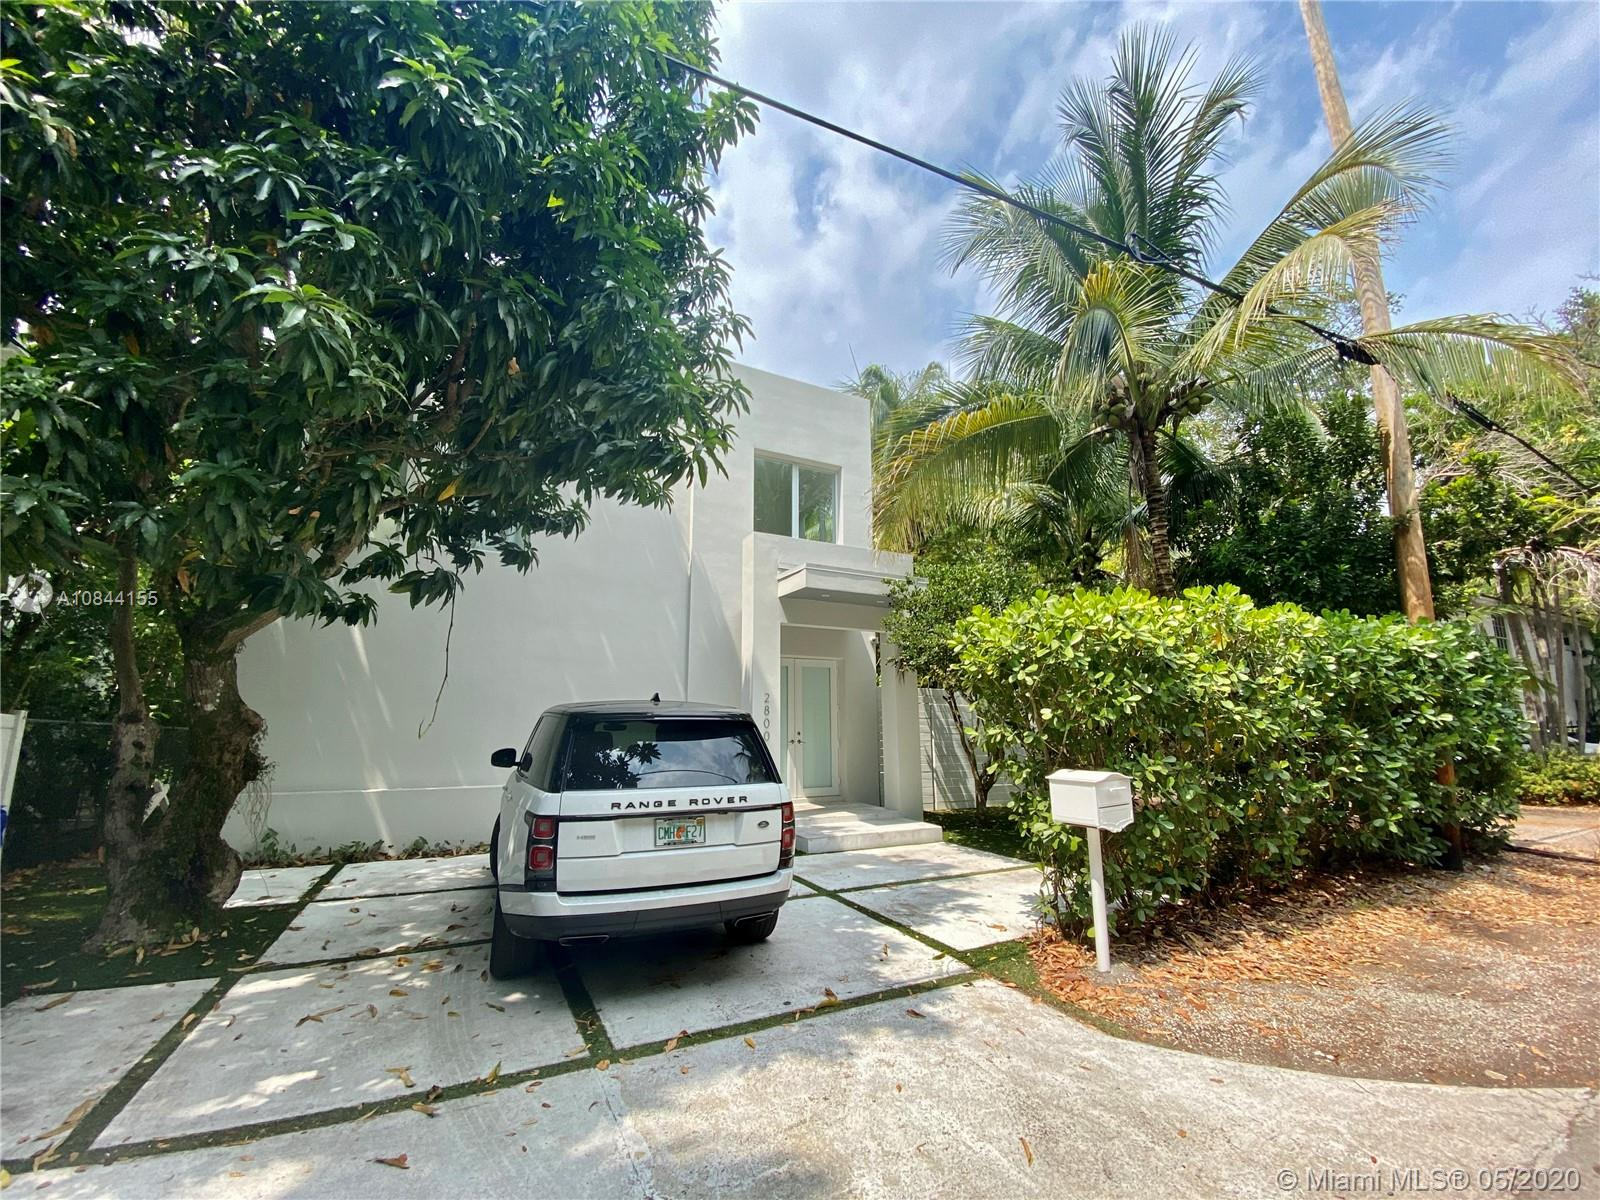 2800 Coacoochee St, Miami, Florida 33133, 6 Bedrooms Bedrooms, ,5 BathroomsBathrooms,Residential,For Sale,2800 Coacoochee St,A10844155